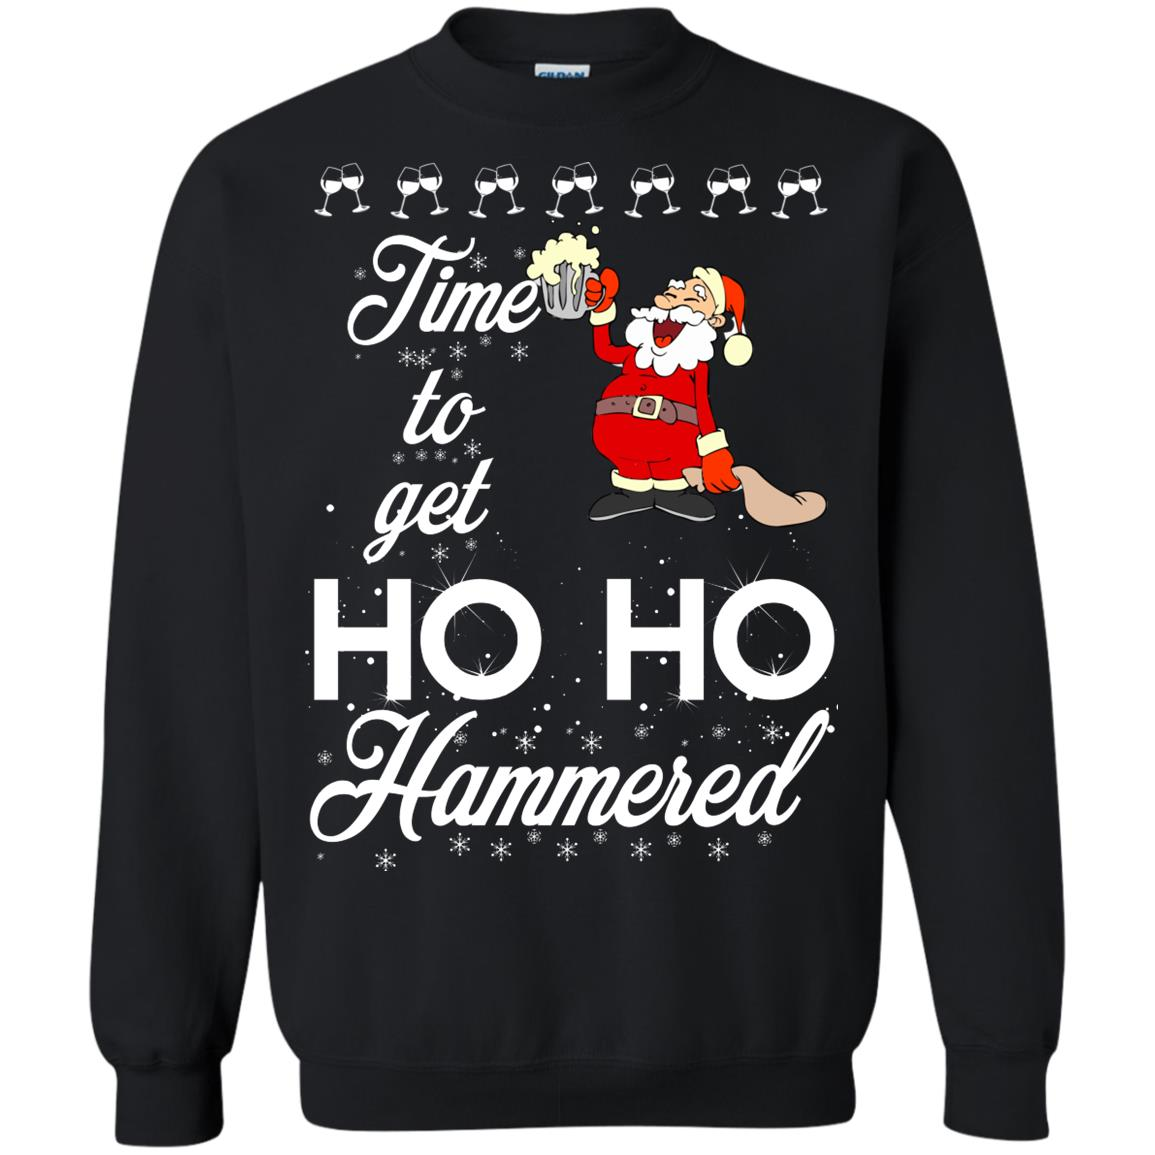 image 1654 - Time To Get Ho Ho Hammered Christmas Sweater, Shirt